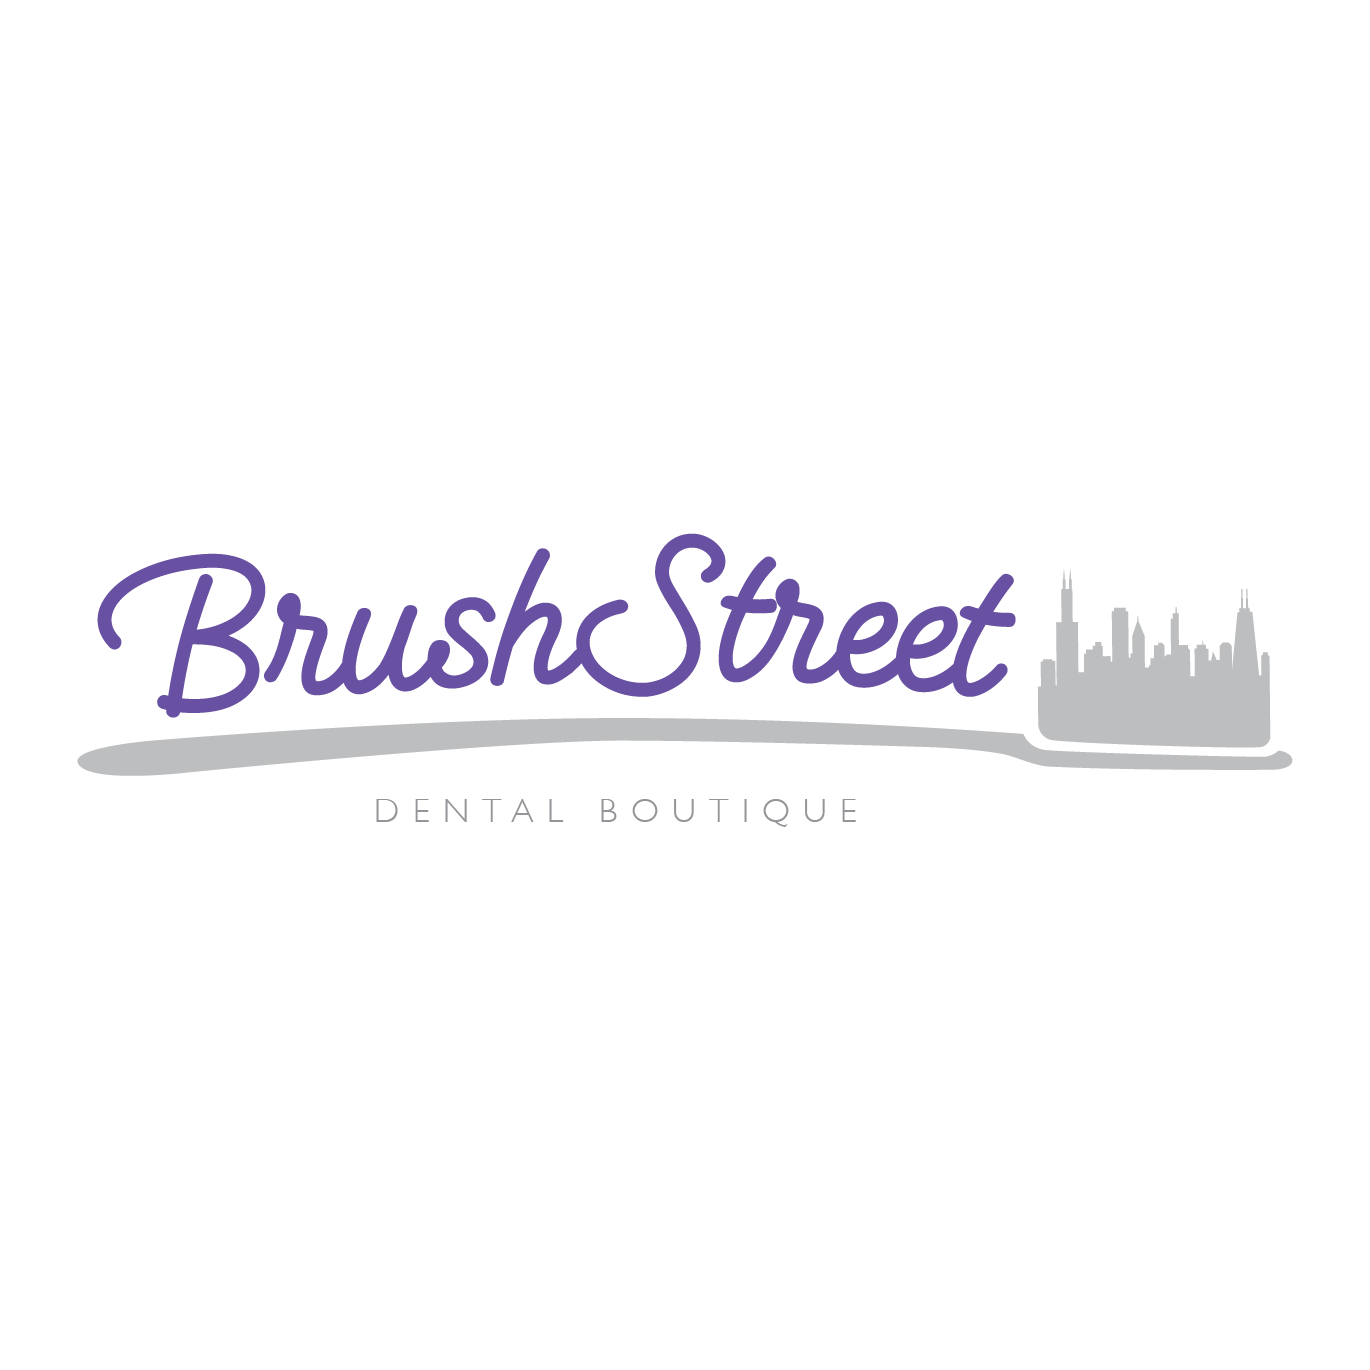 Brush Street Dental Boutique